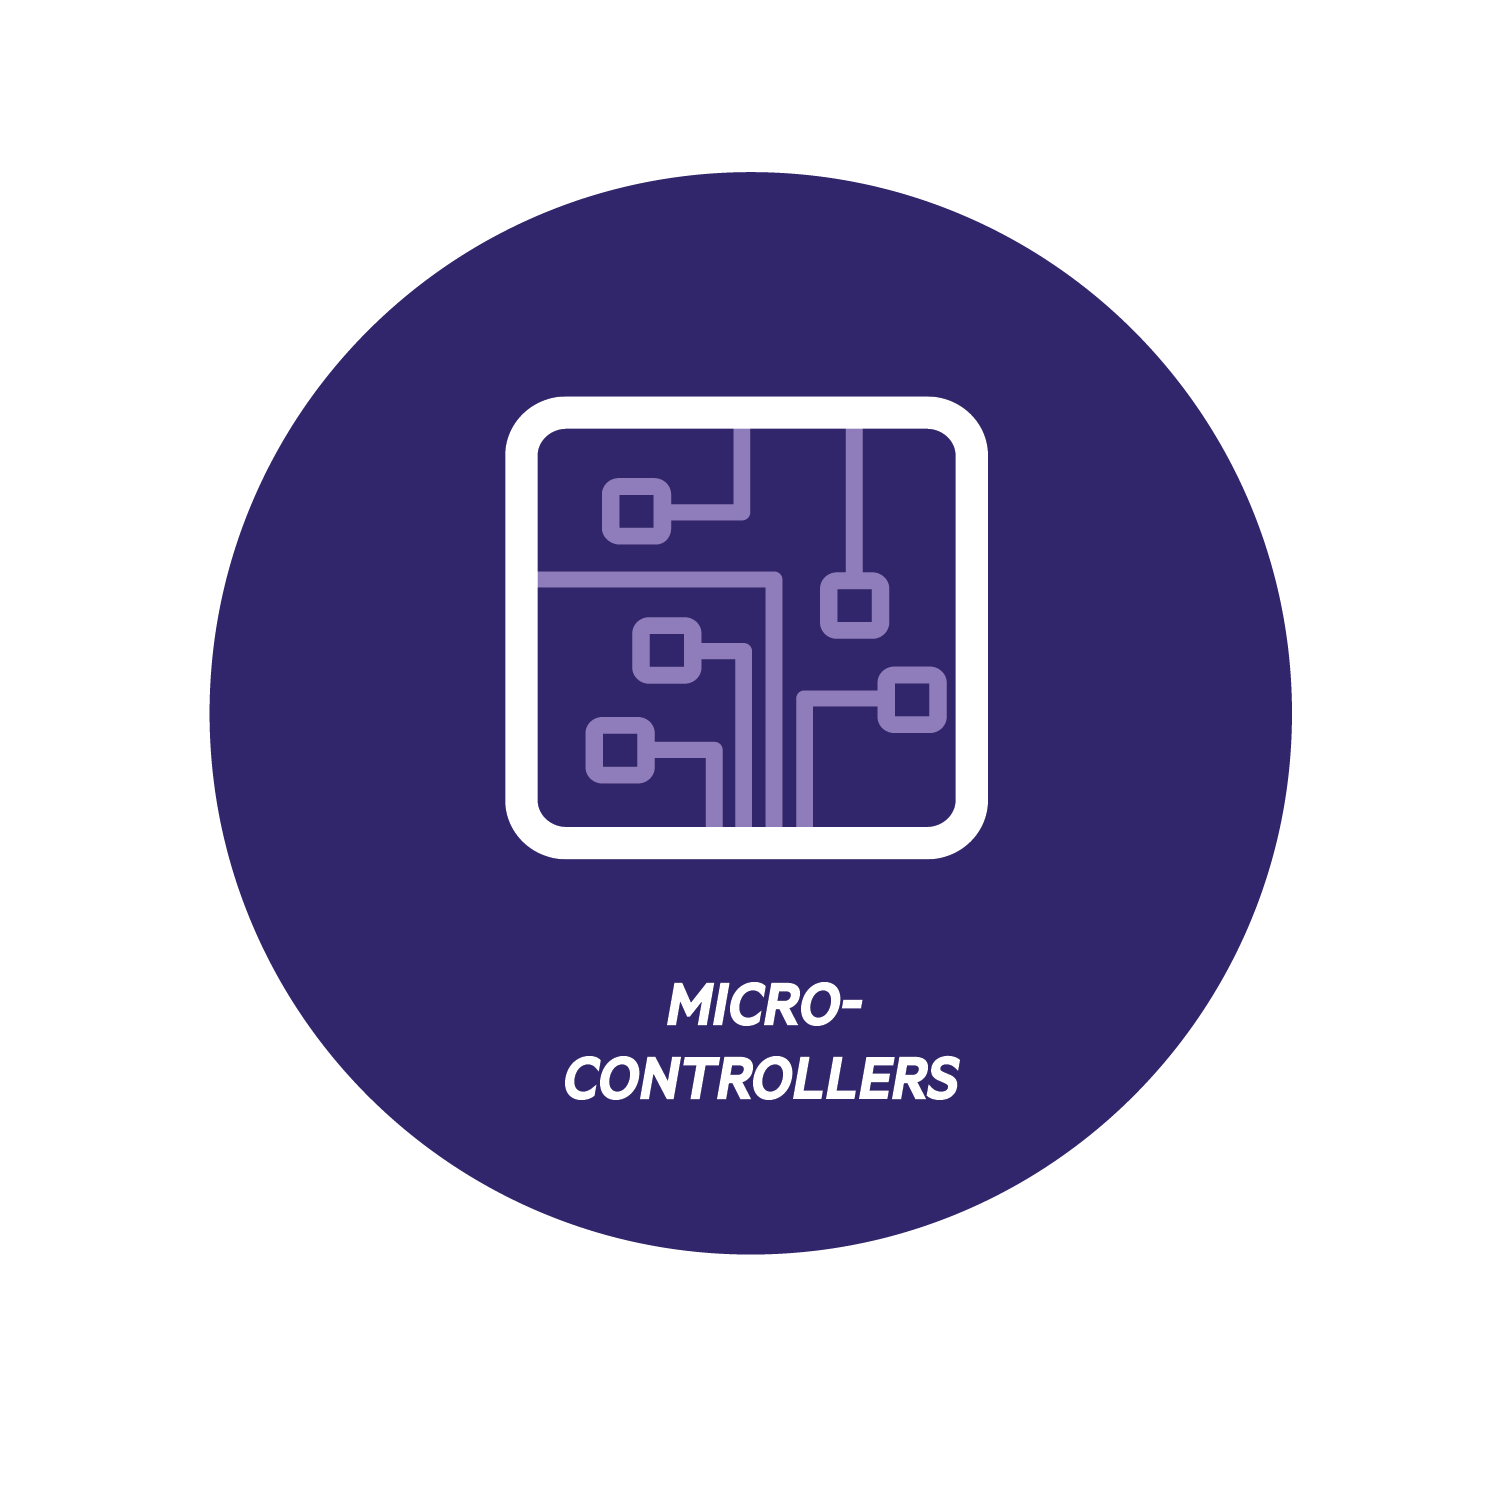 Microcontrollers